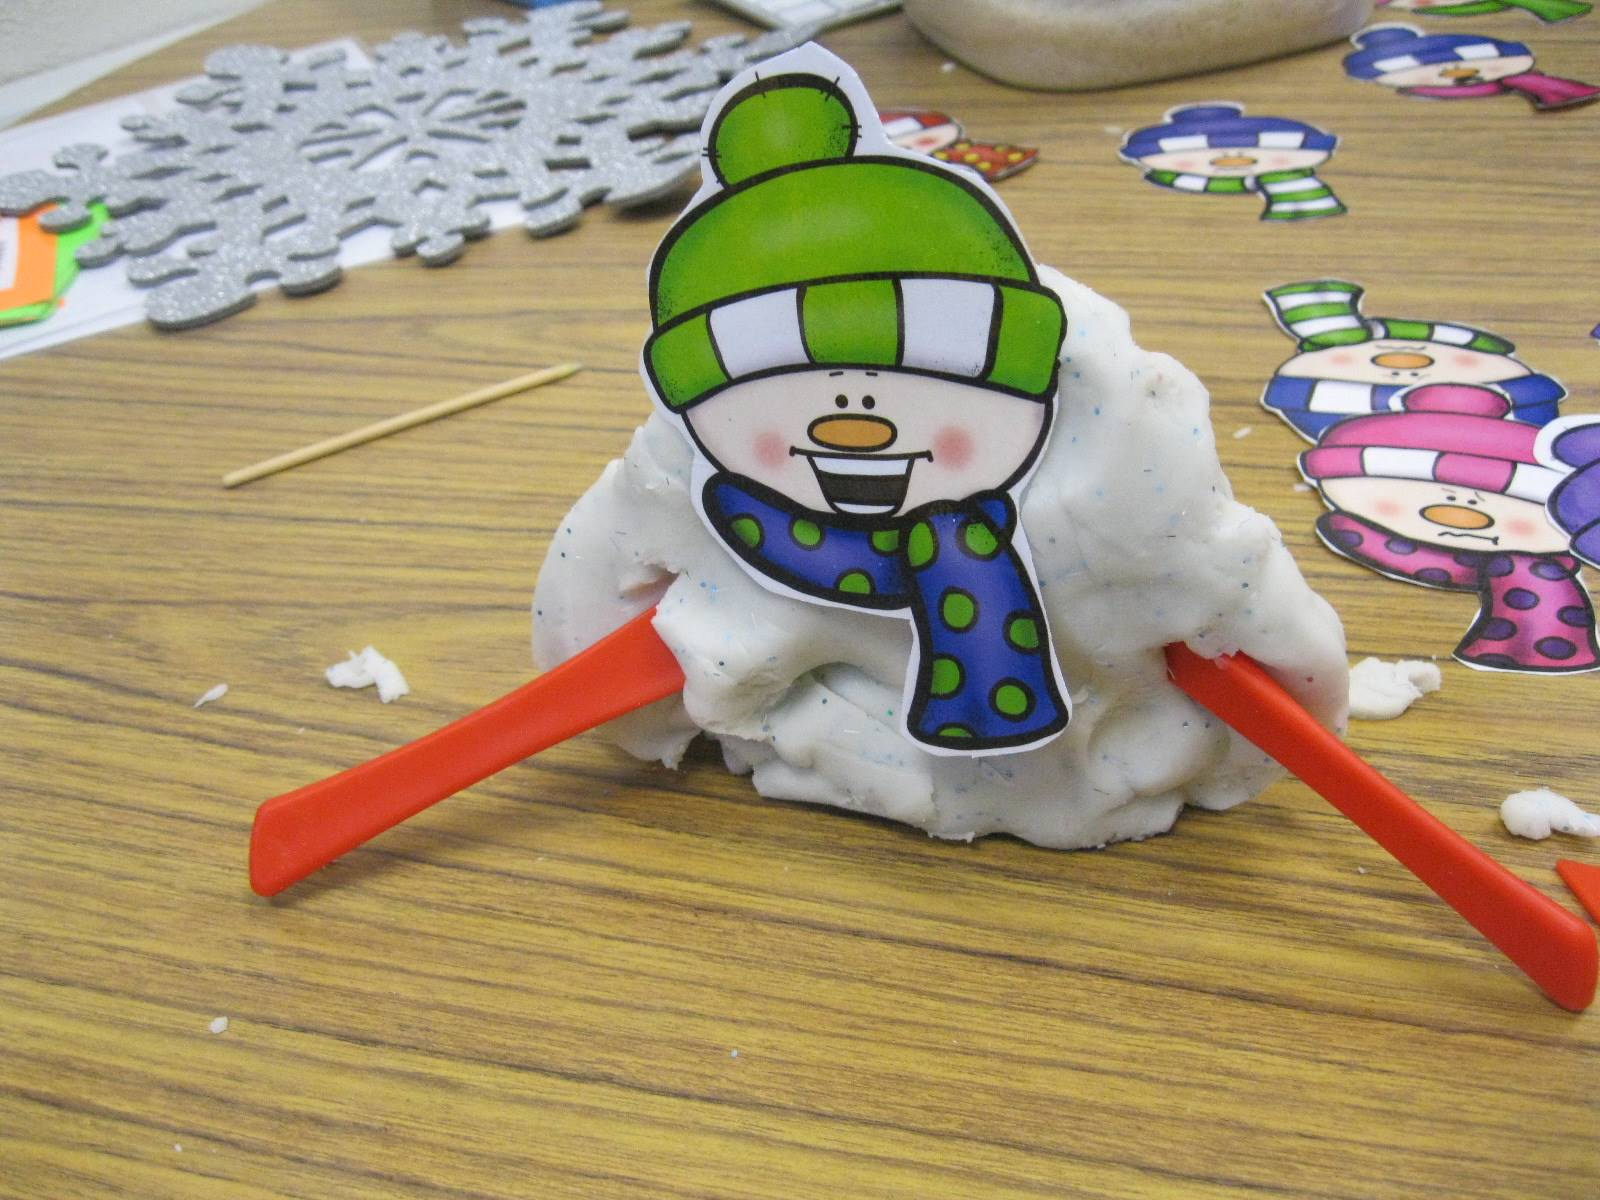 An excited played snowman.